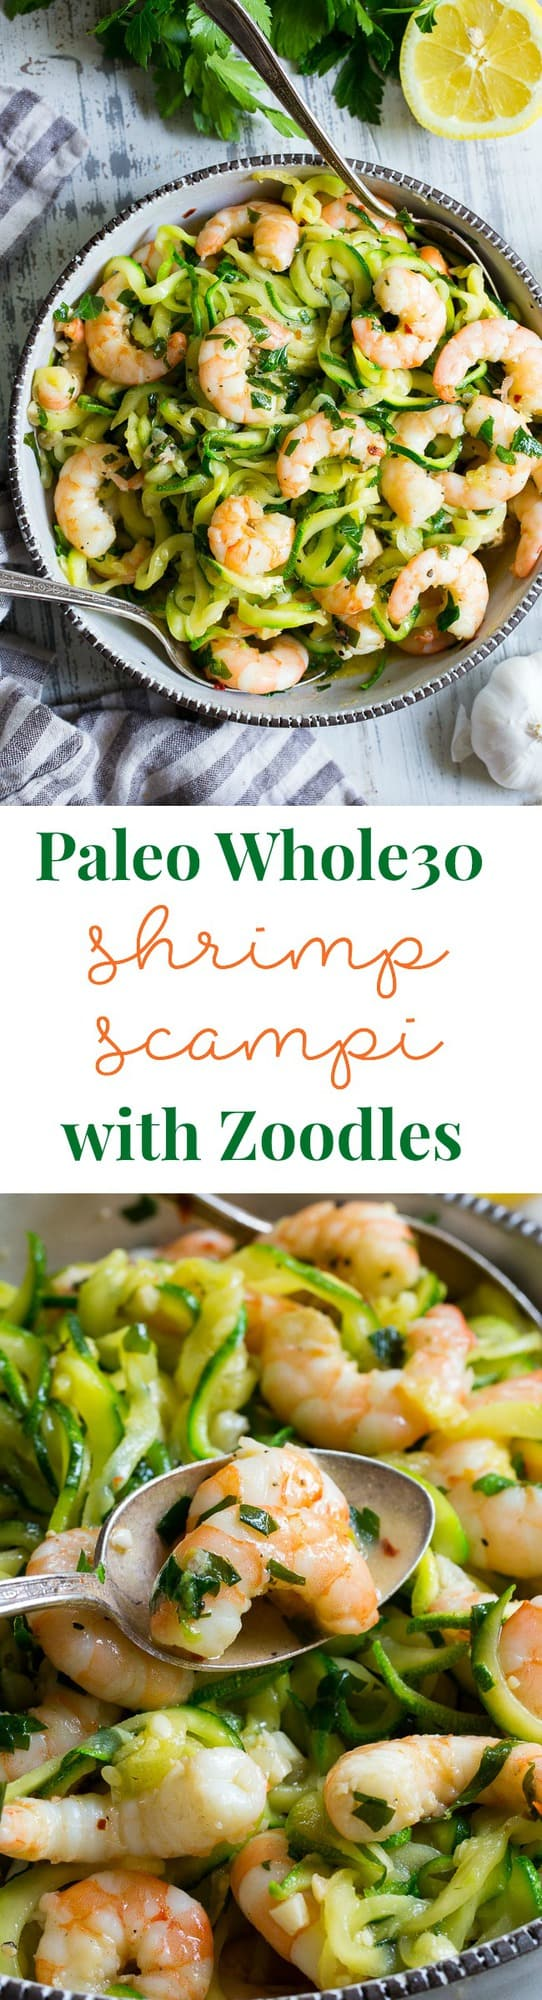 This paleo shrimp scampi is packed with flavor and perfect tossed with zucchini noodles!  Prep your zoodles ahead of time for a quick, easy, and wildly delicious gluten-free, paleo, keto, and Whole30 compliant dinner that's ready in just 20 minutes.